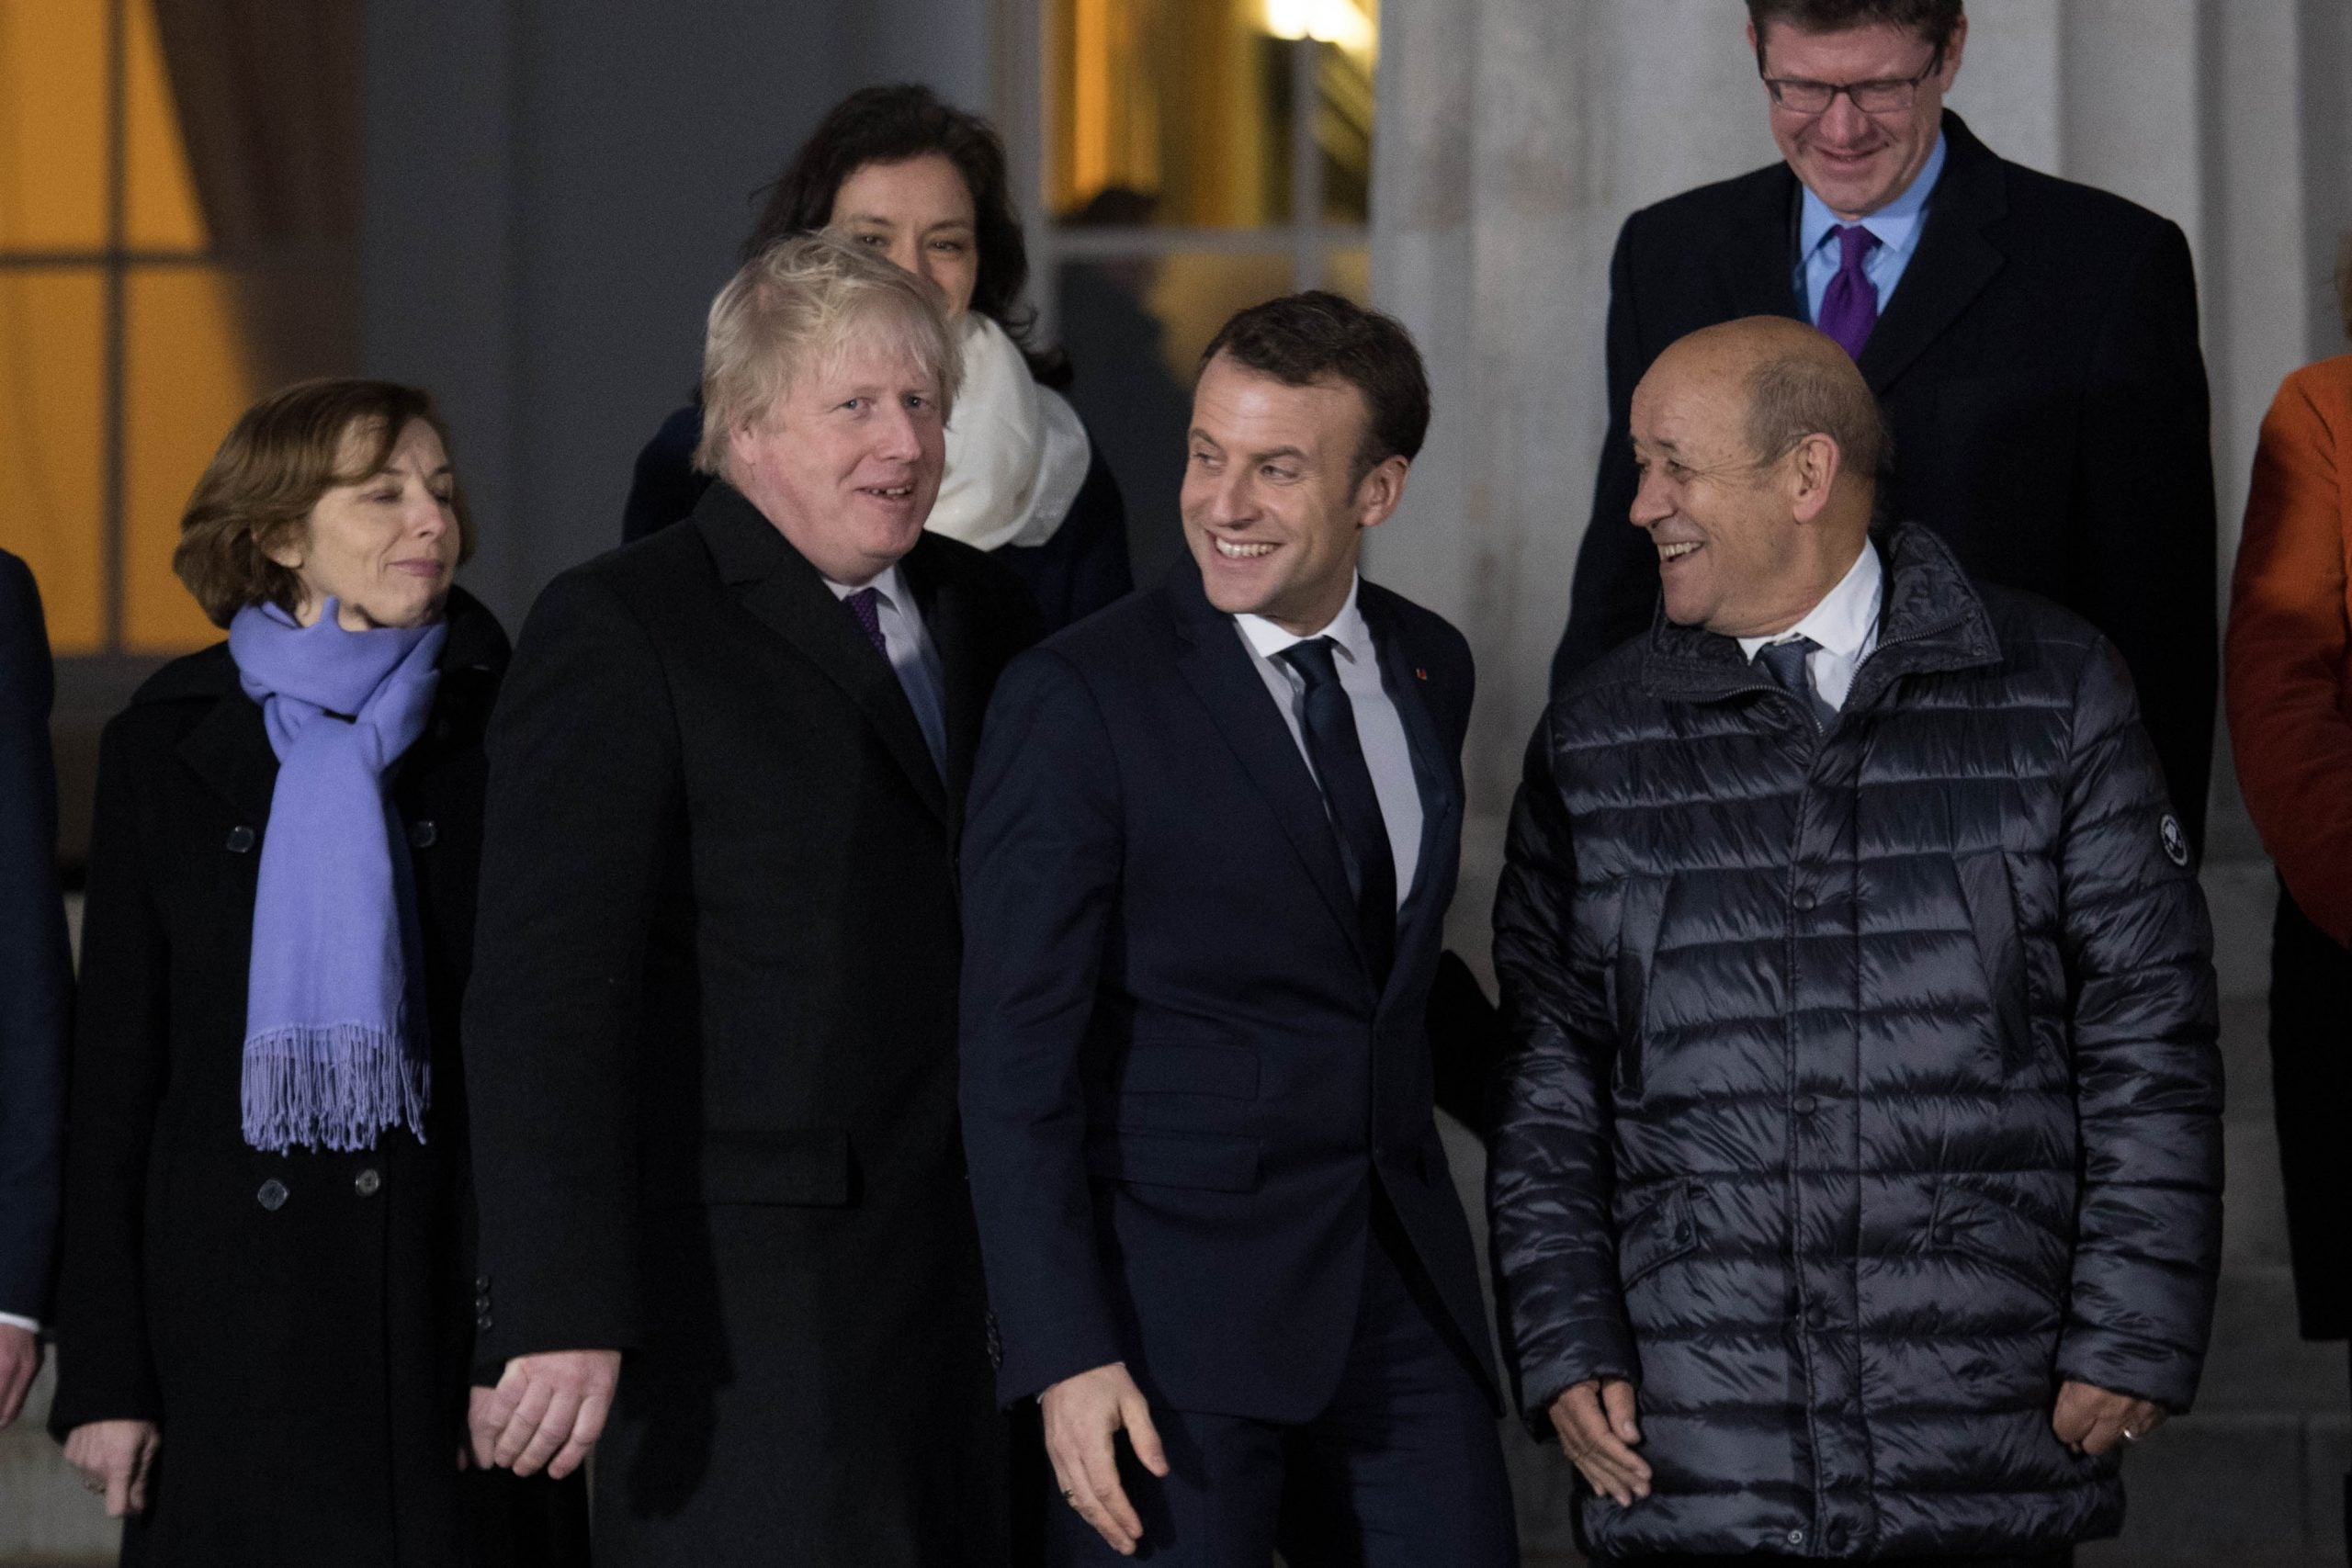 The new PM wants to make tough choices on Europe – but there are no good options left